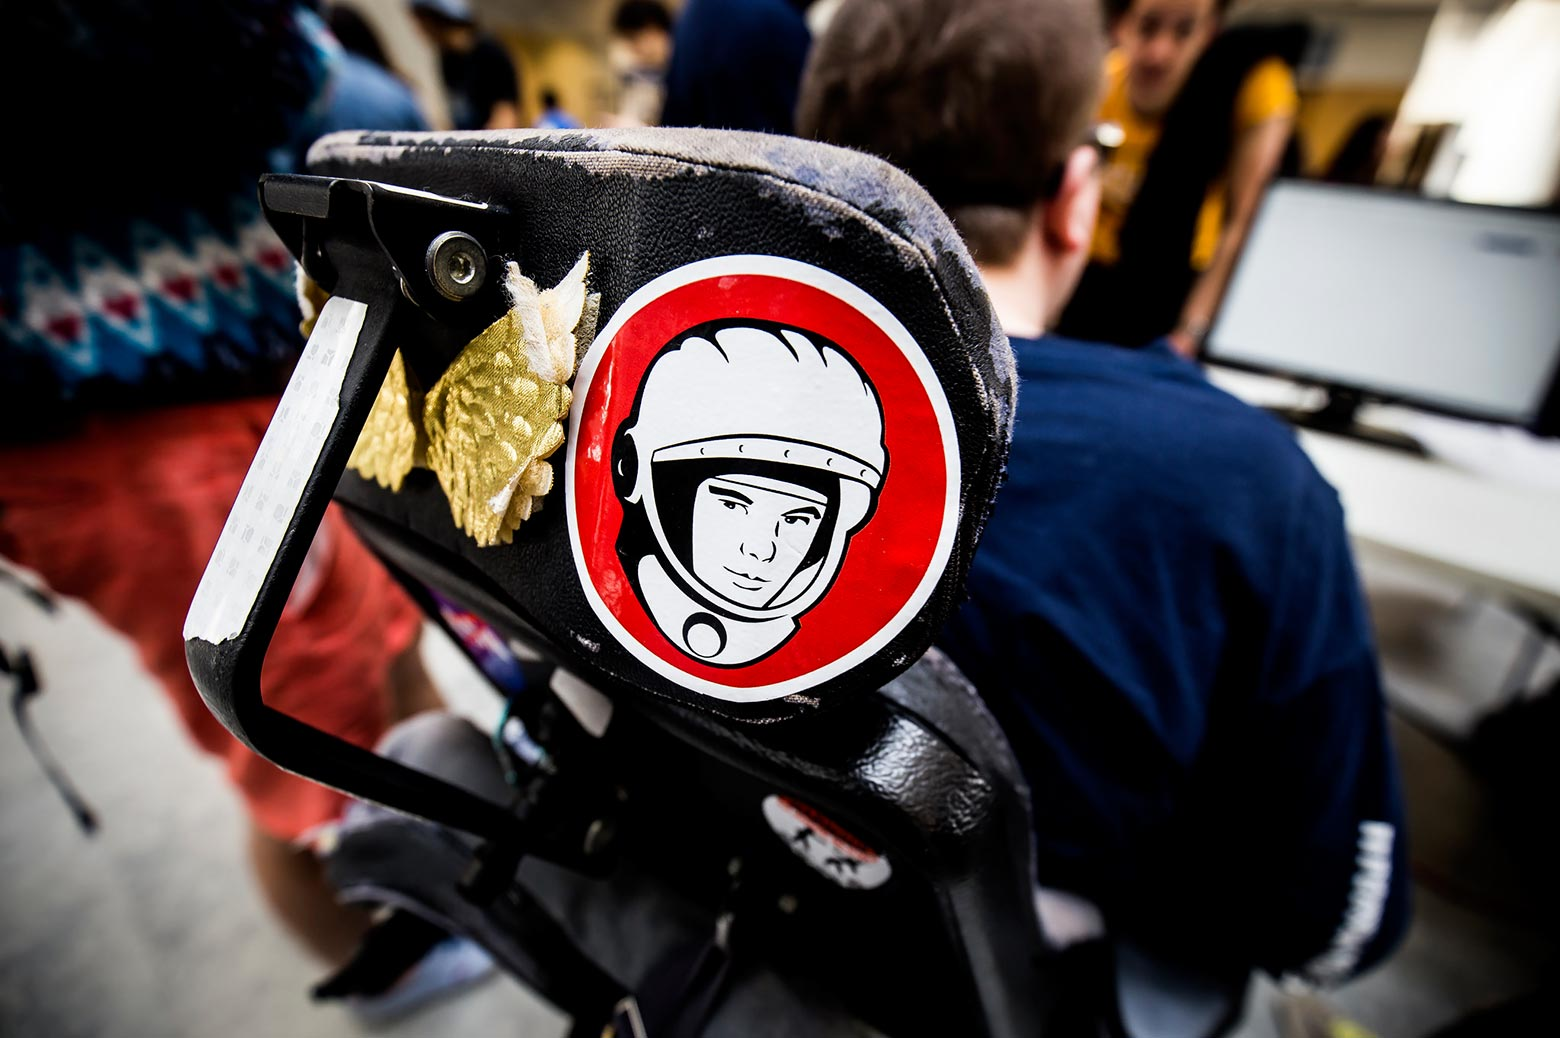 An astronaut sticker adorns the back of a disabled student's wheelchair